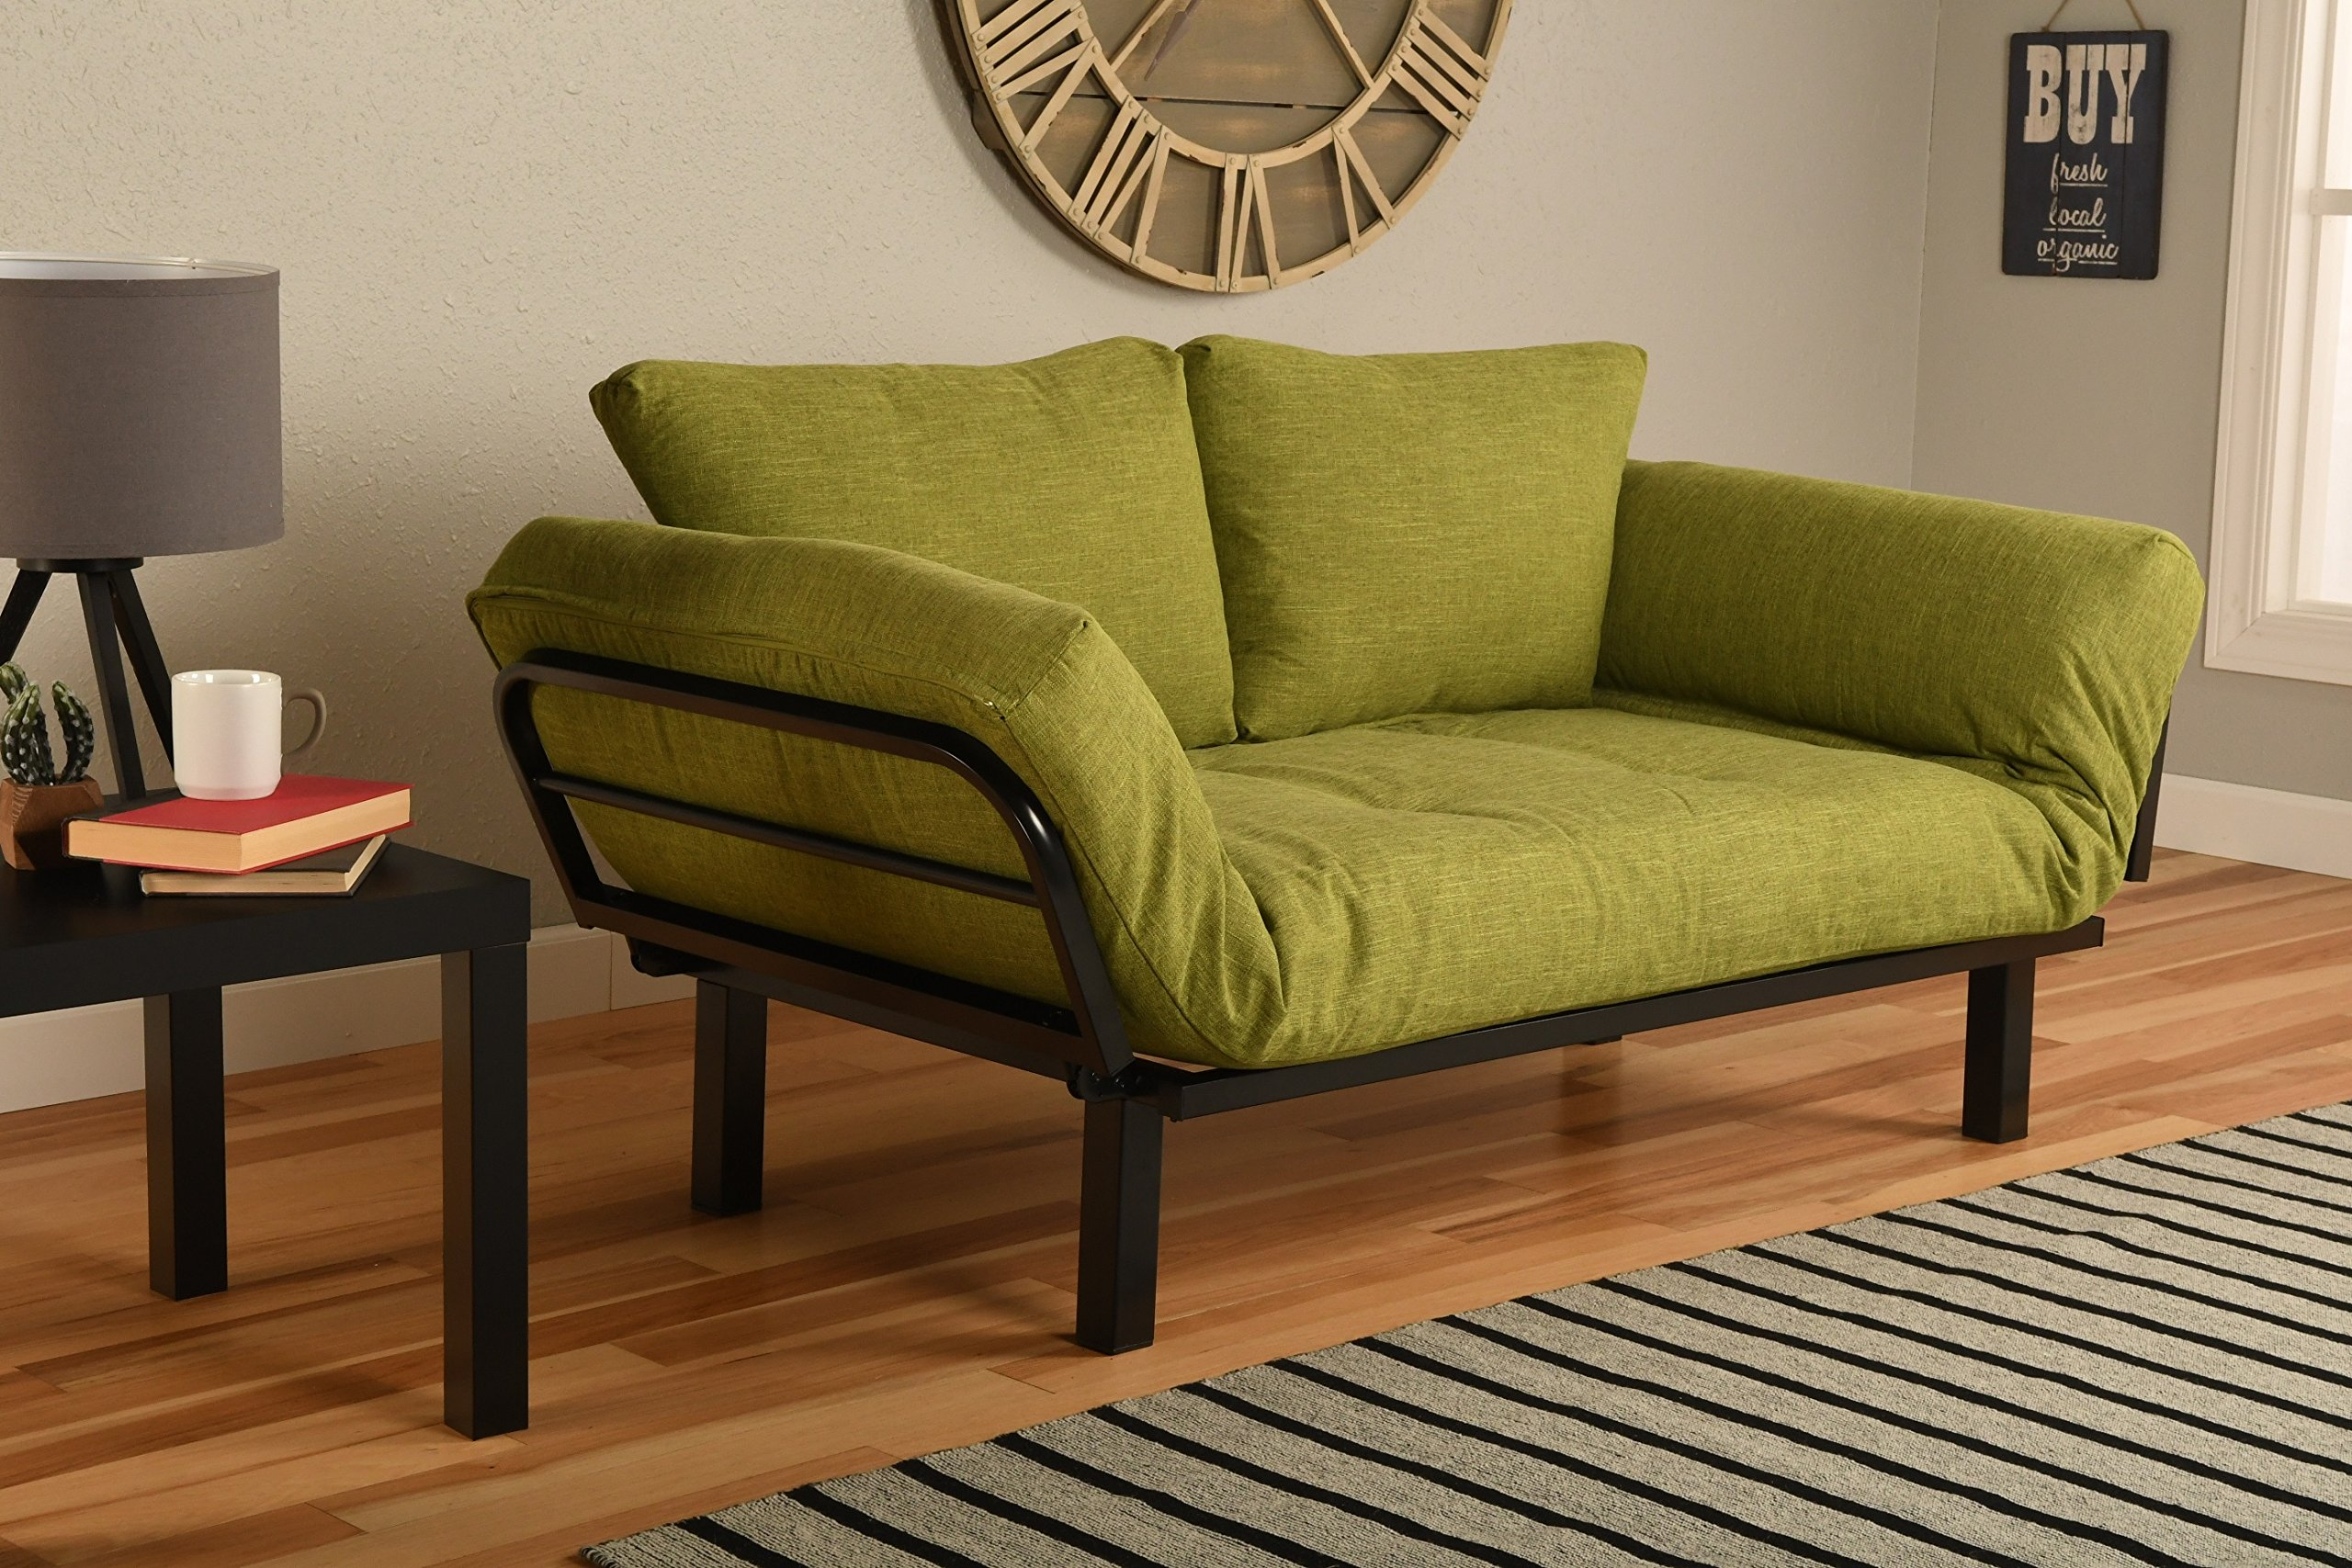 Best Futon Lounger Sit Lounge Sleep Smaller Size Furniture is Perfect for College Dorm Bedroom Studio Apartment Guest Room Covered Patio Porch (LIME GREEN LINEN)